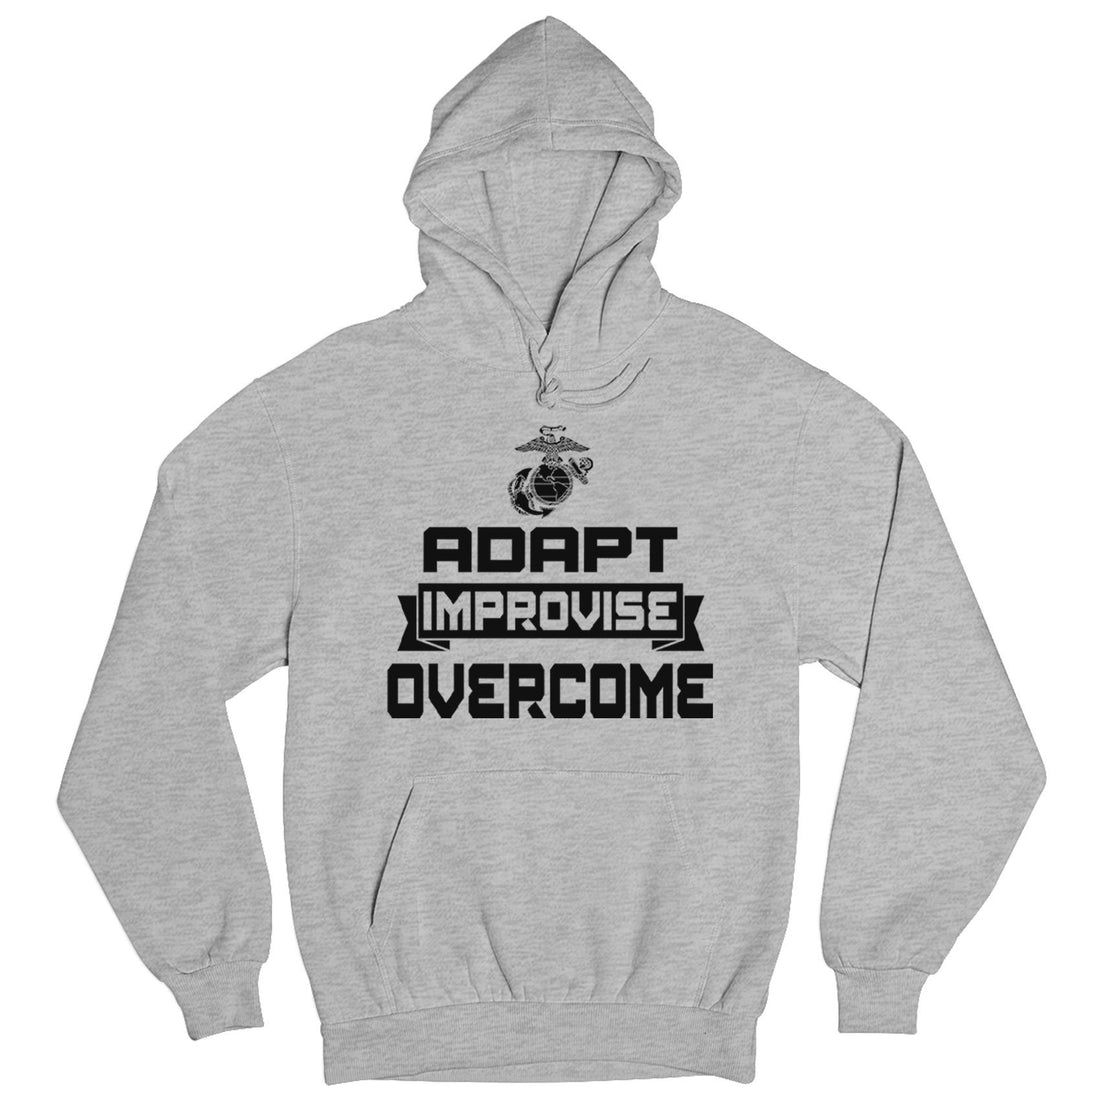 Adapt, Improvise, Overcome Hoodie - Marine Corps Direct